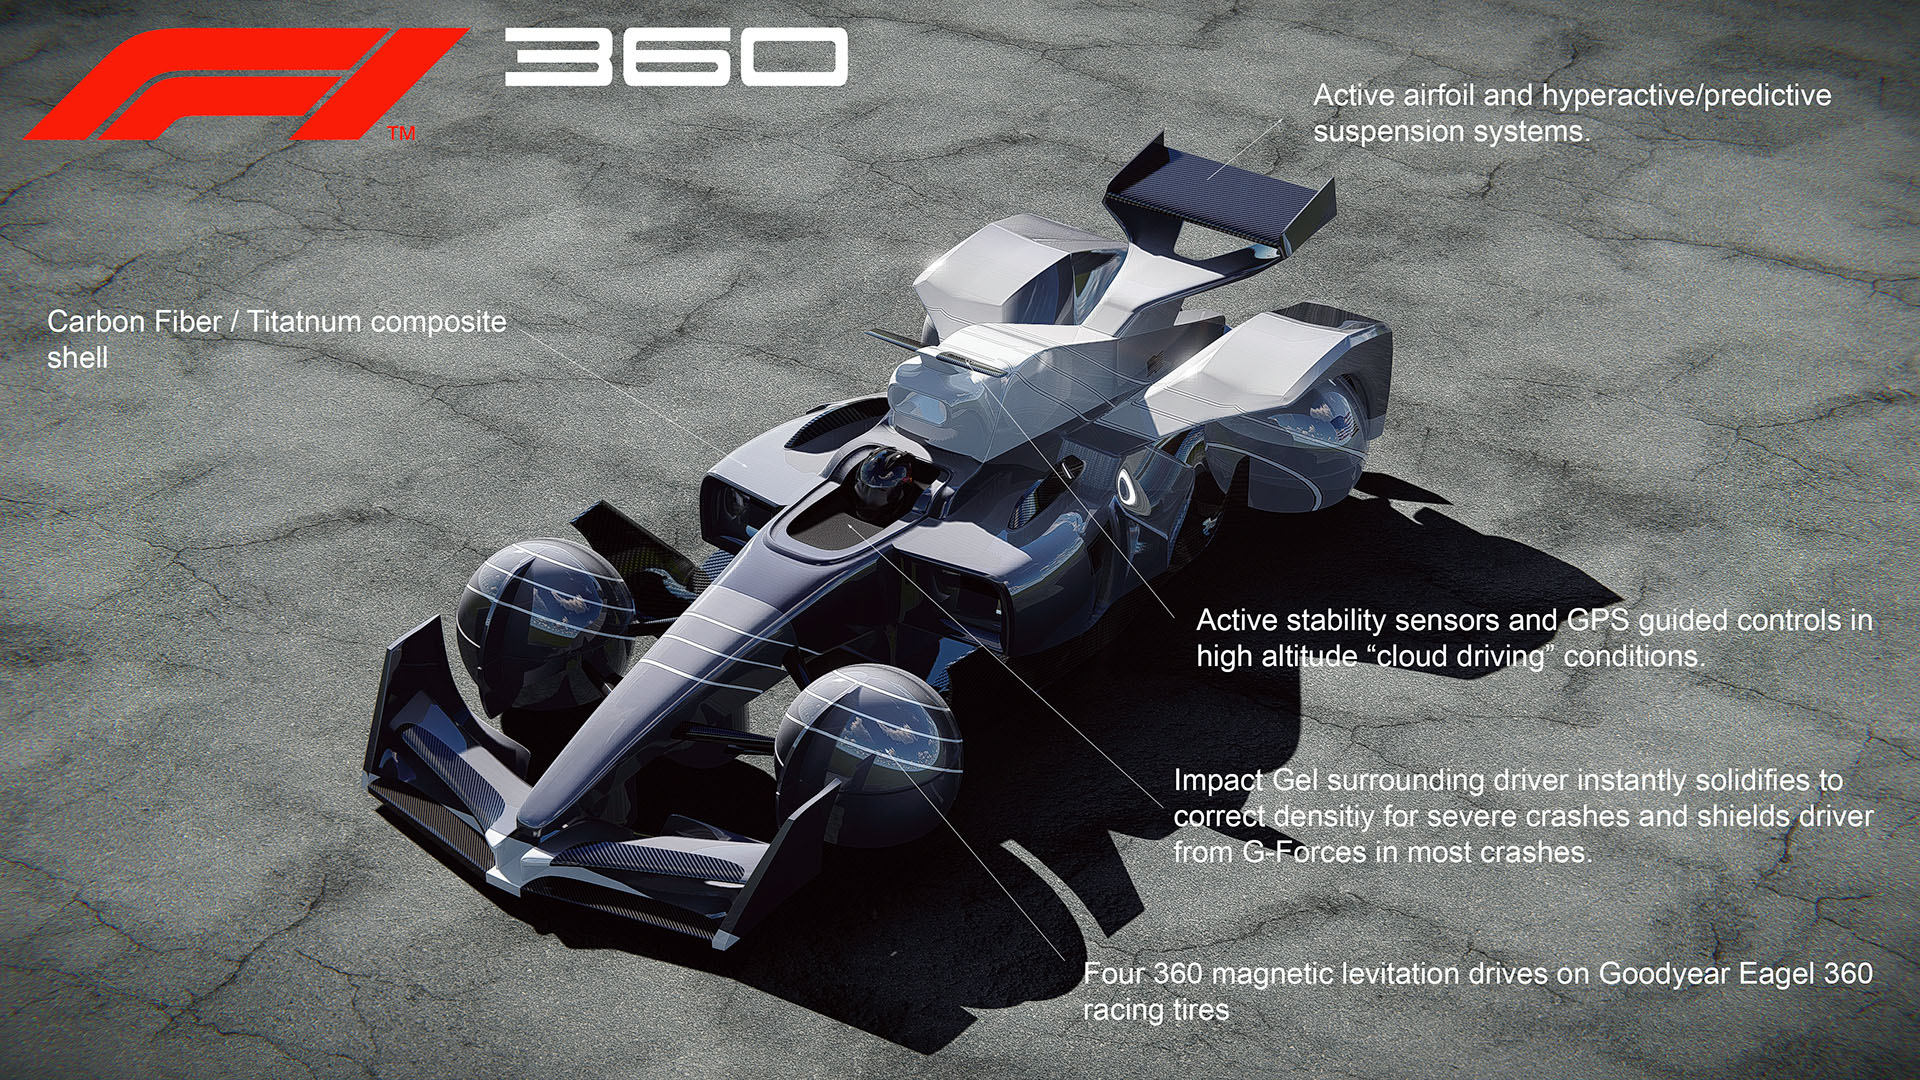 Formula One 360E Concept Racing Car Features Goodyear Eagle 360